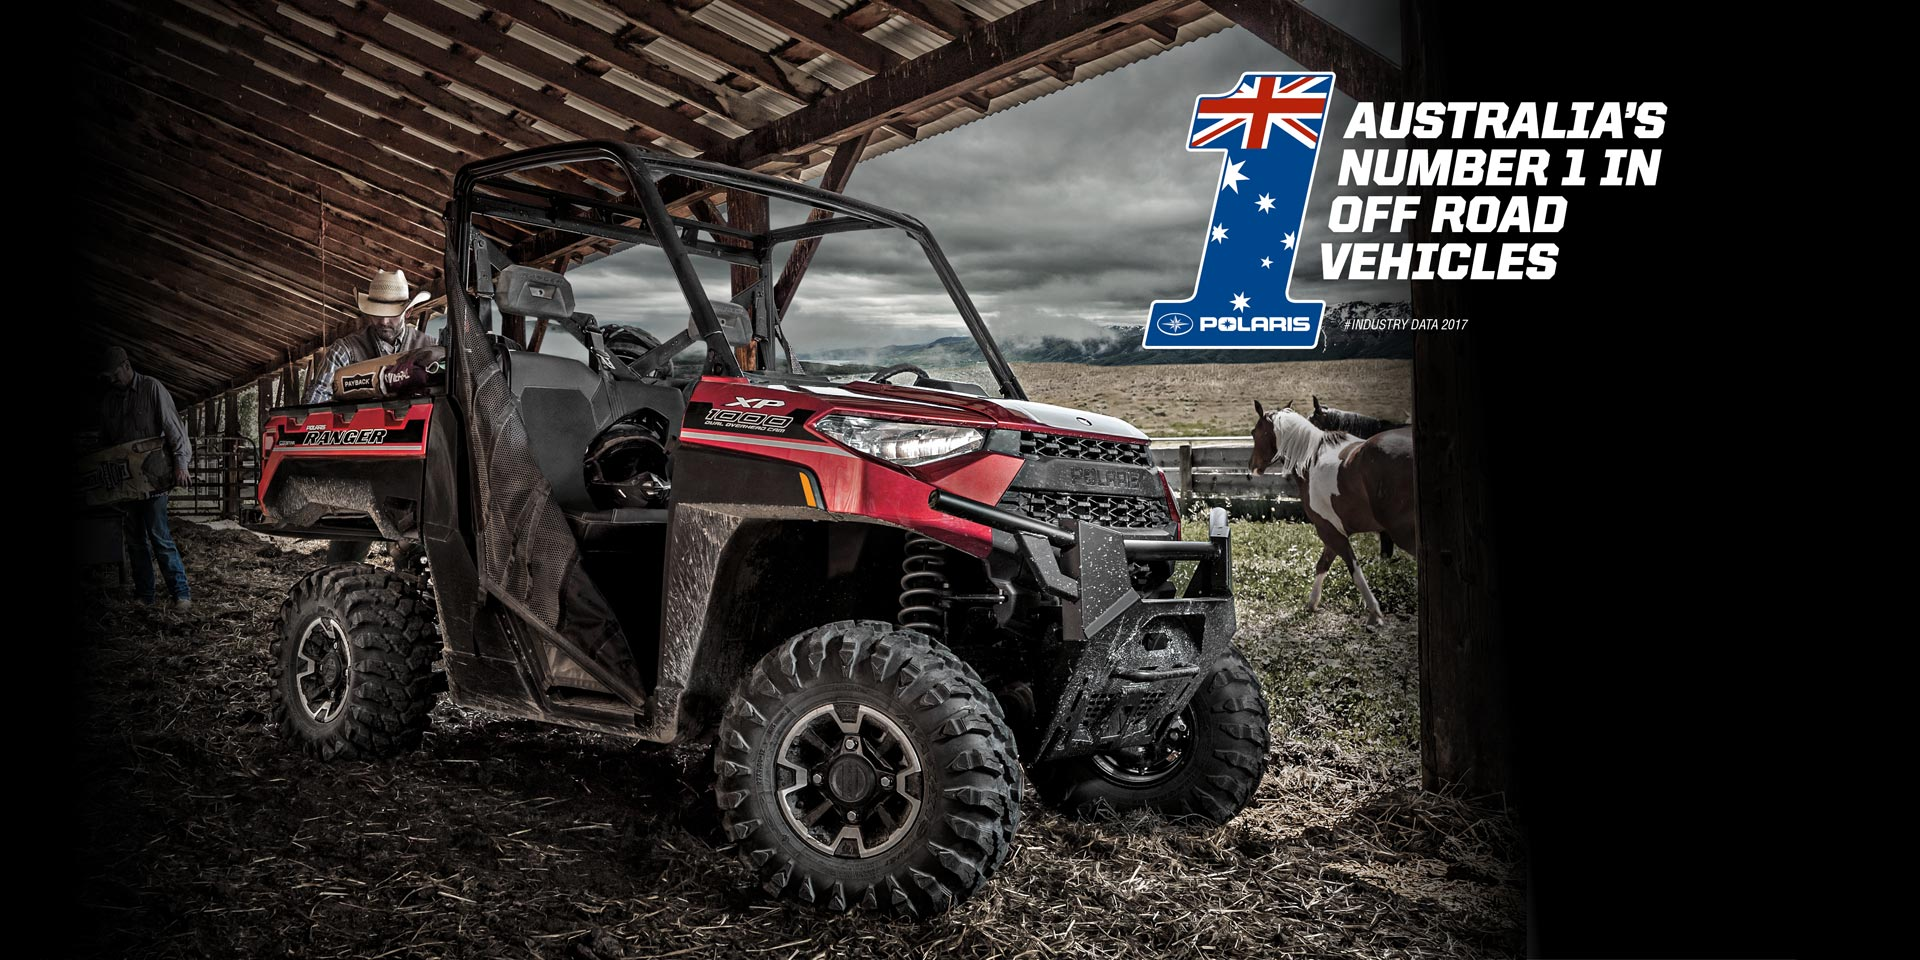 Australia's Number 1 in Off Road Vehicles